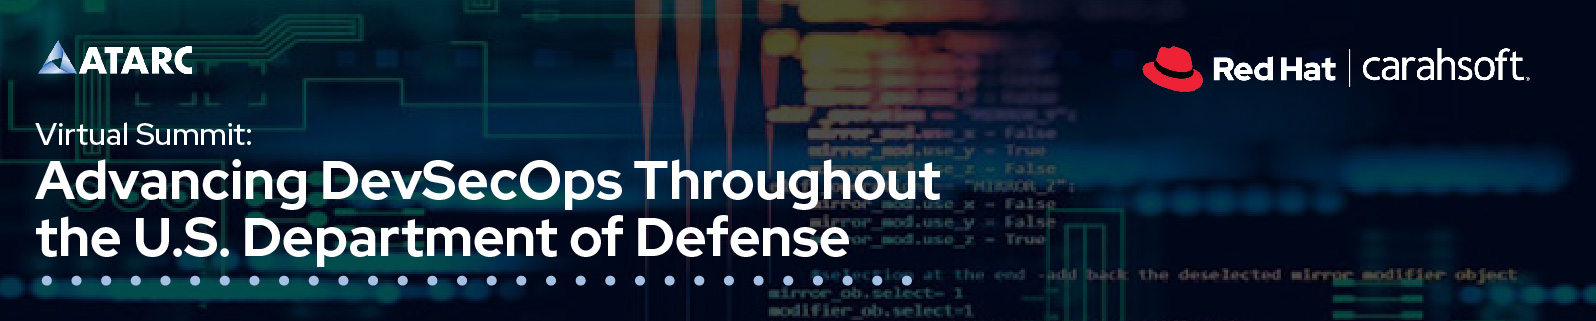 ATARC Virtual Summit: Advancing DevSecOps throughout the U.S. Department of Defense